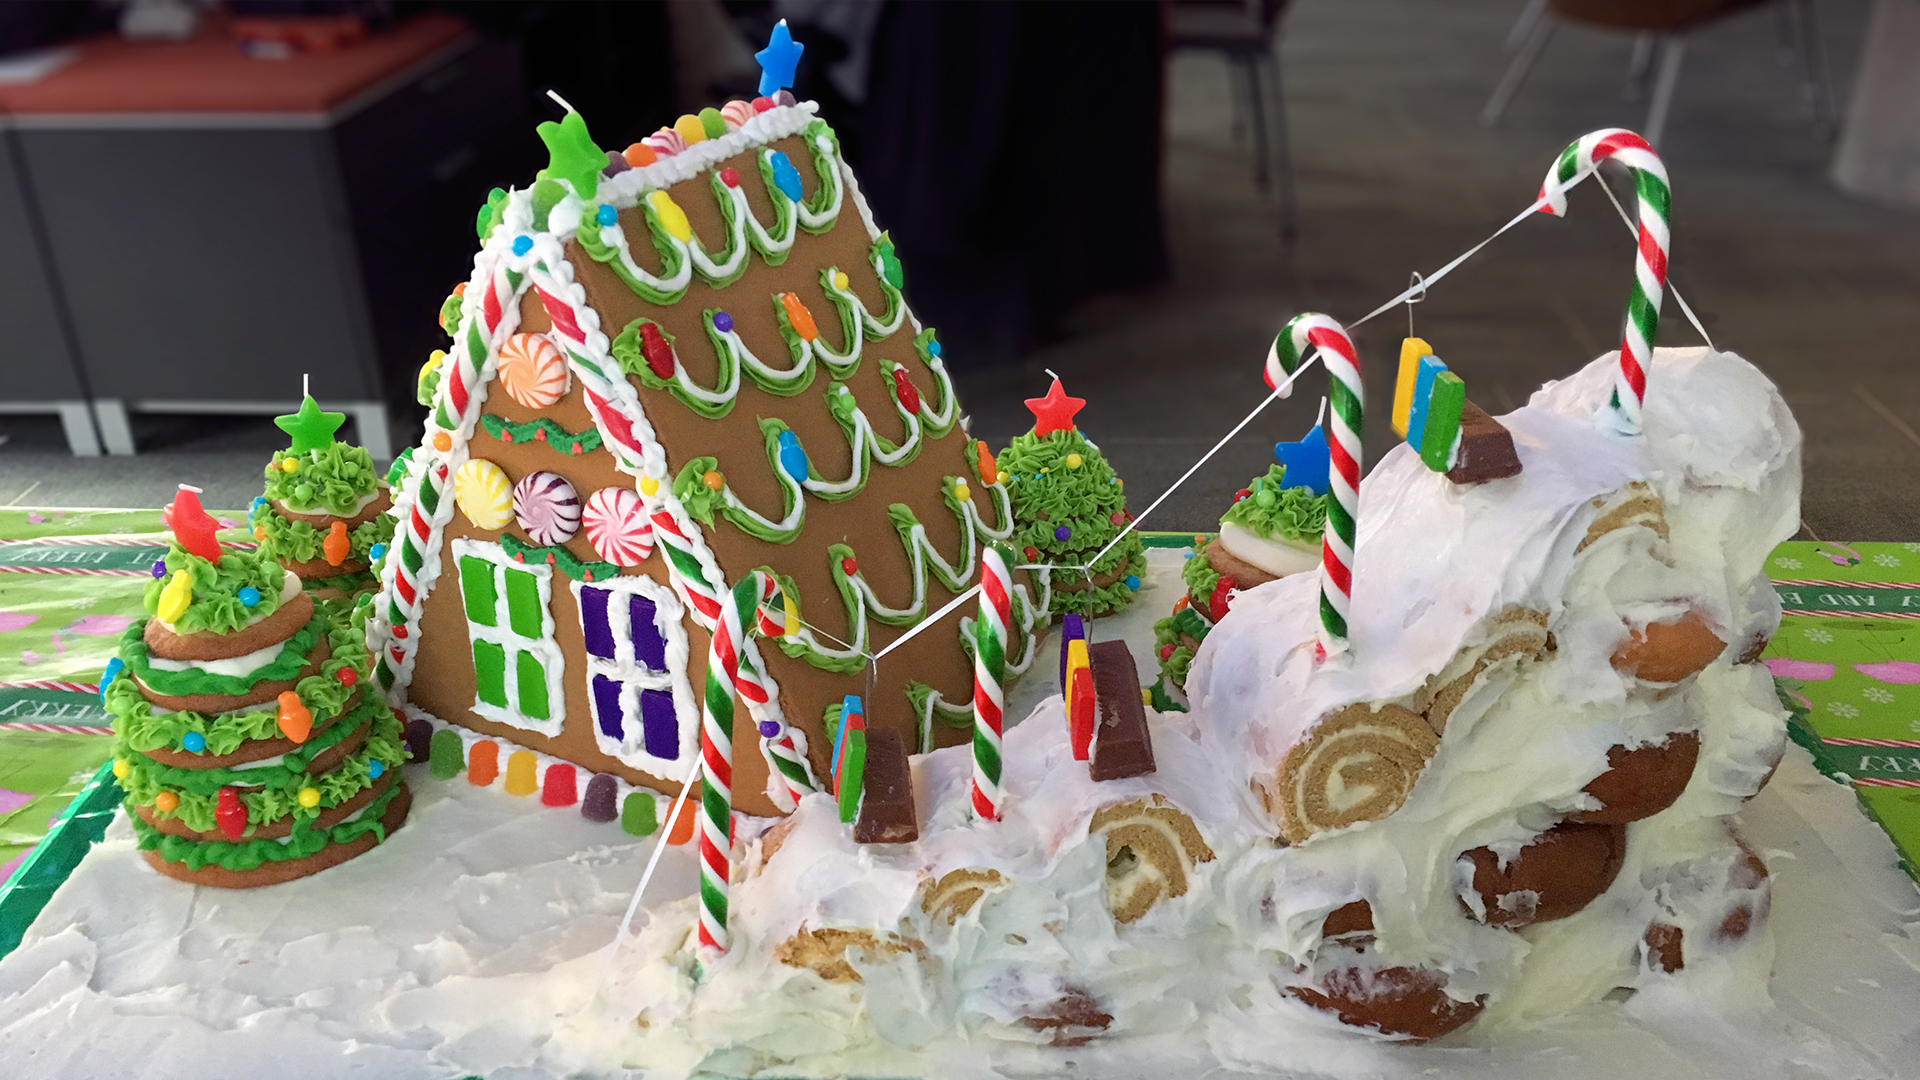 Gingerbread house and ski slope creation for BFT's 2018 Holiday Hurrah